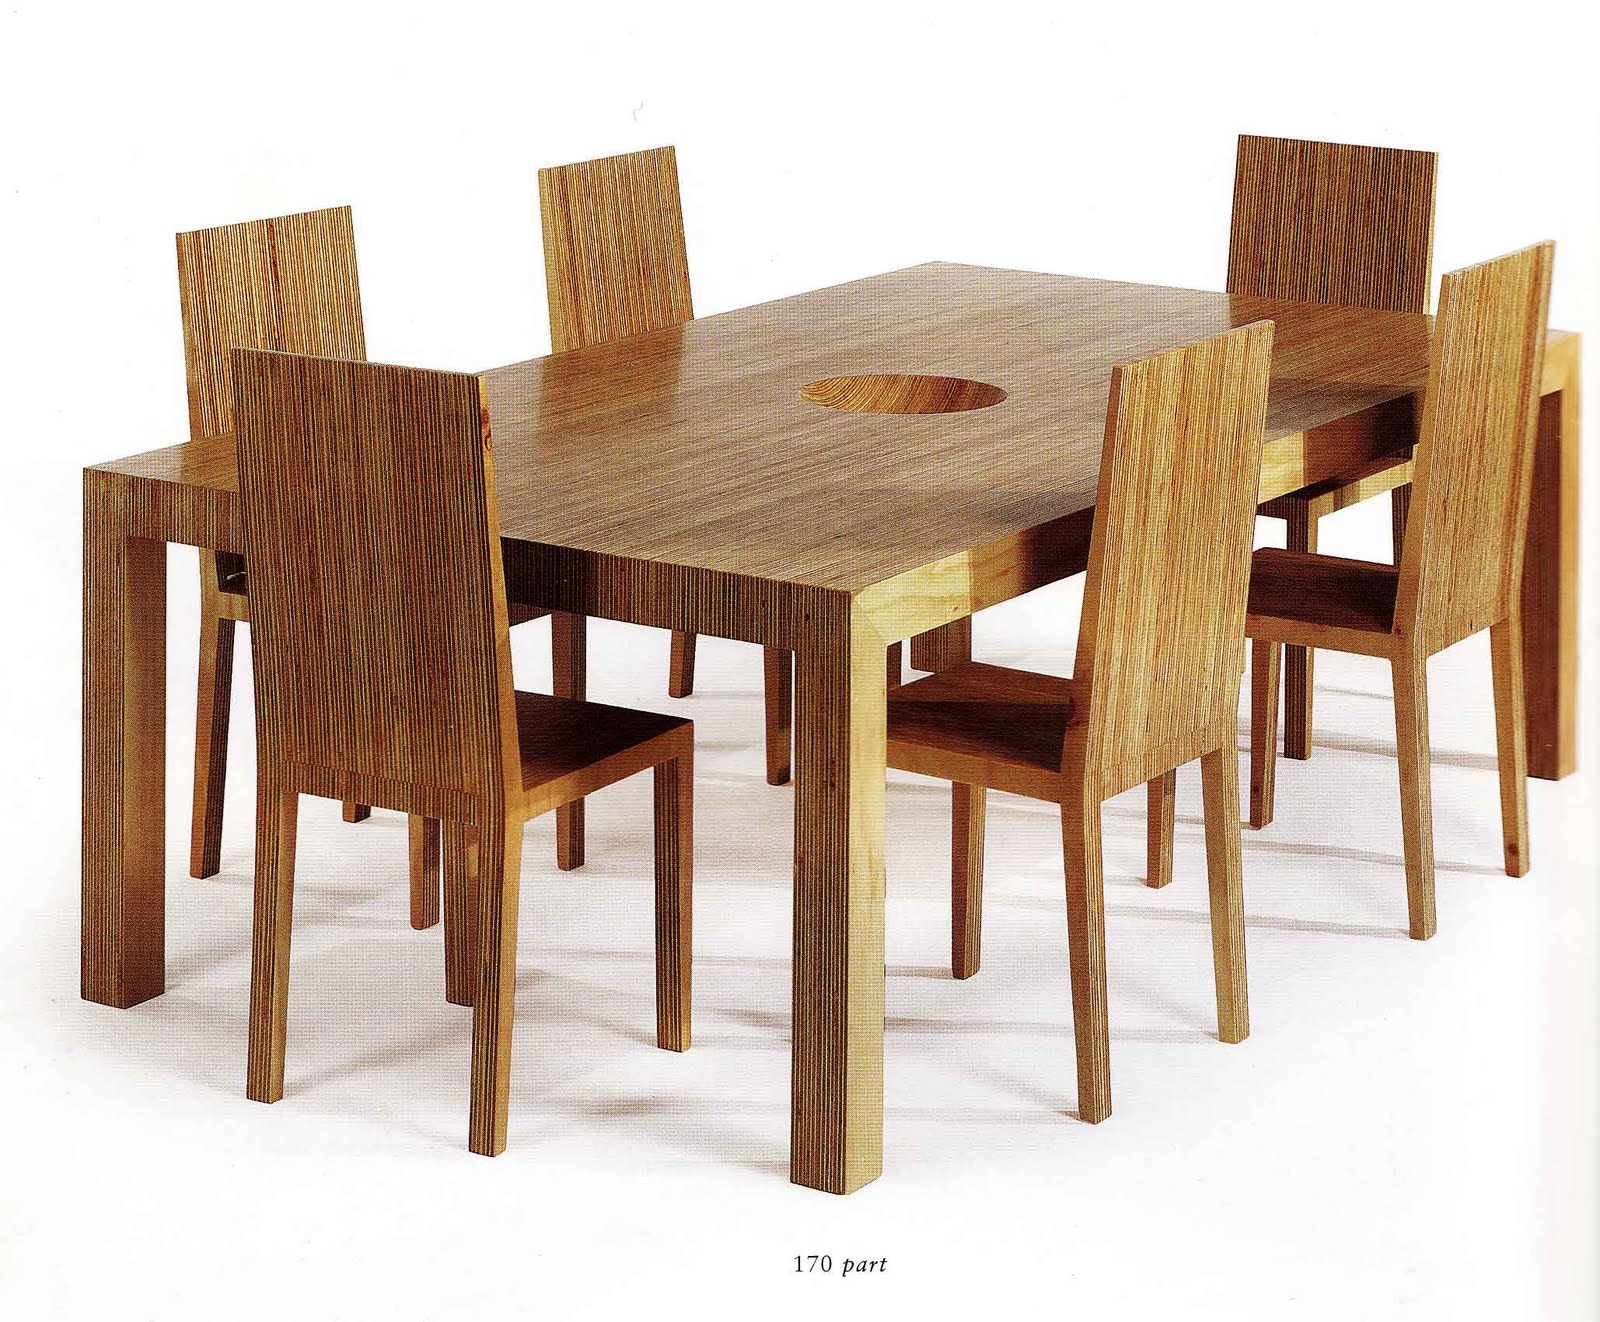 Neudecor Nature Morte Bowl Dining Table And Chairs By  : 1 from neudecor.blogspot.com size 1600 x 1322 jpeg 442kB